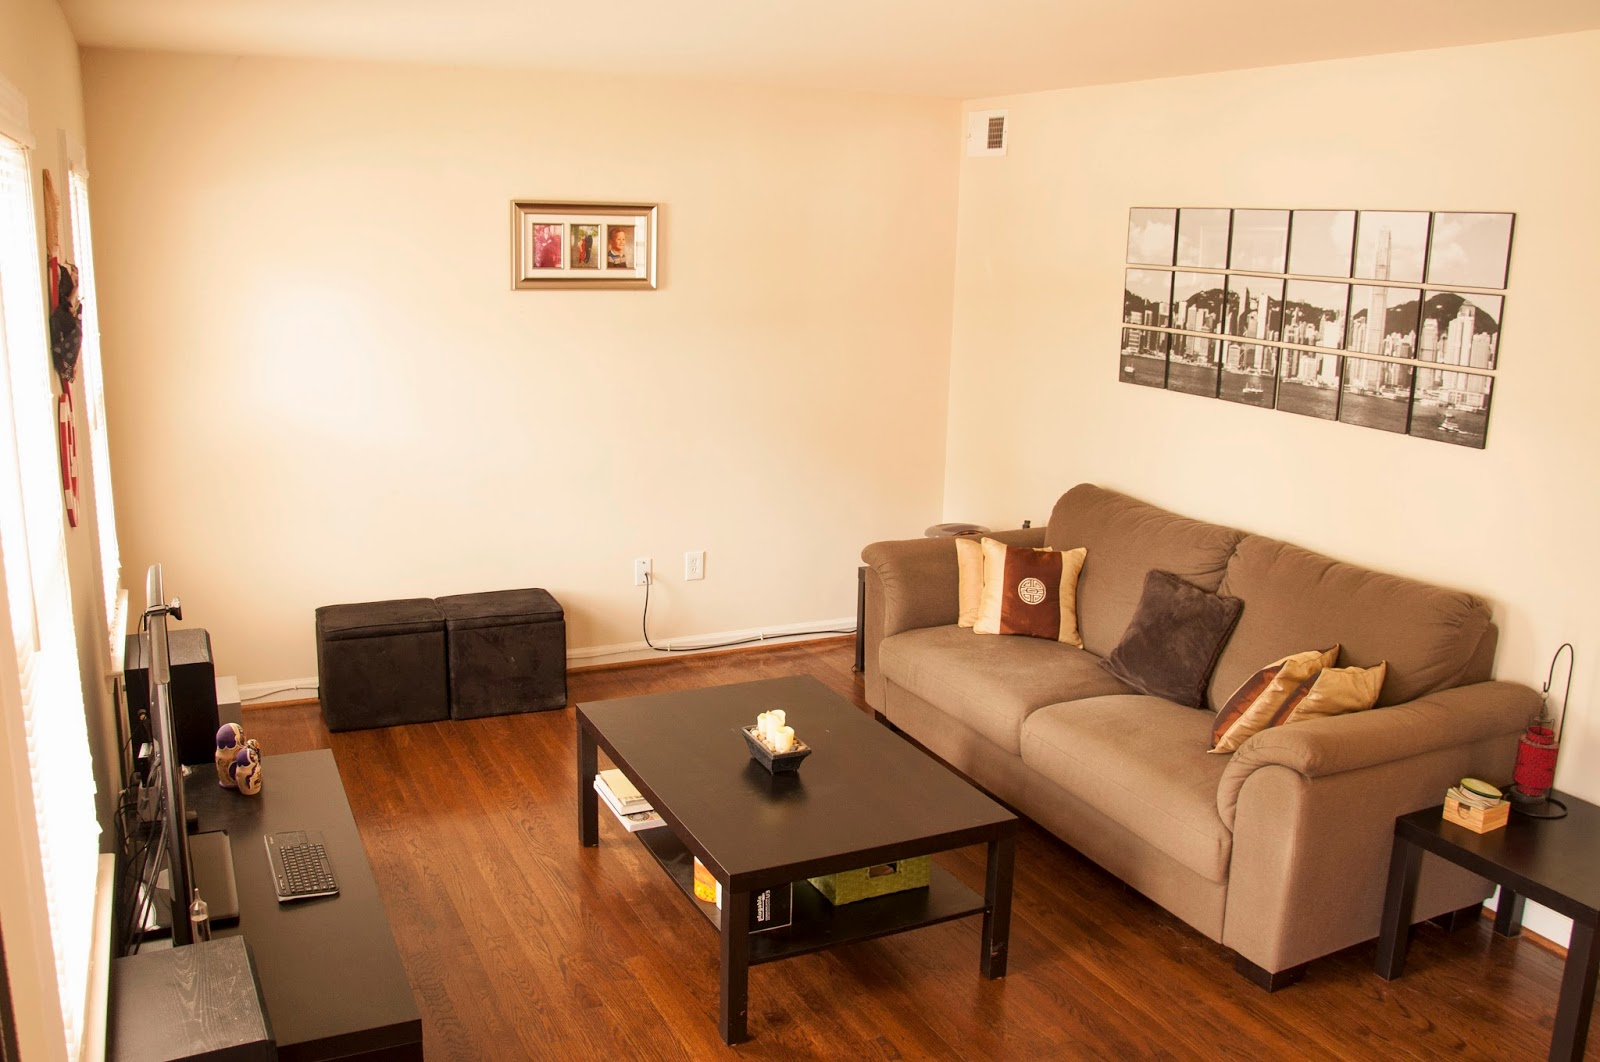 Bon Chances Are You Probably Donu0027t Live Like In A Model Home, However When  Getting Ready To Selling Your Home Less Is More. Re Arrange Some Of Your  Furniture ...